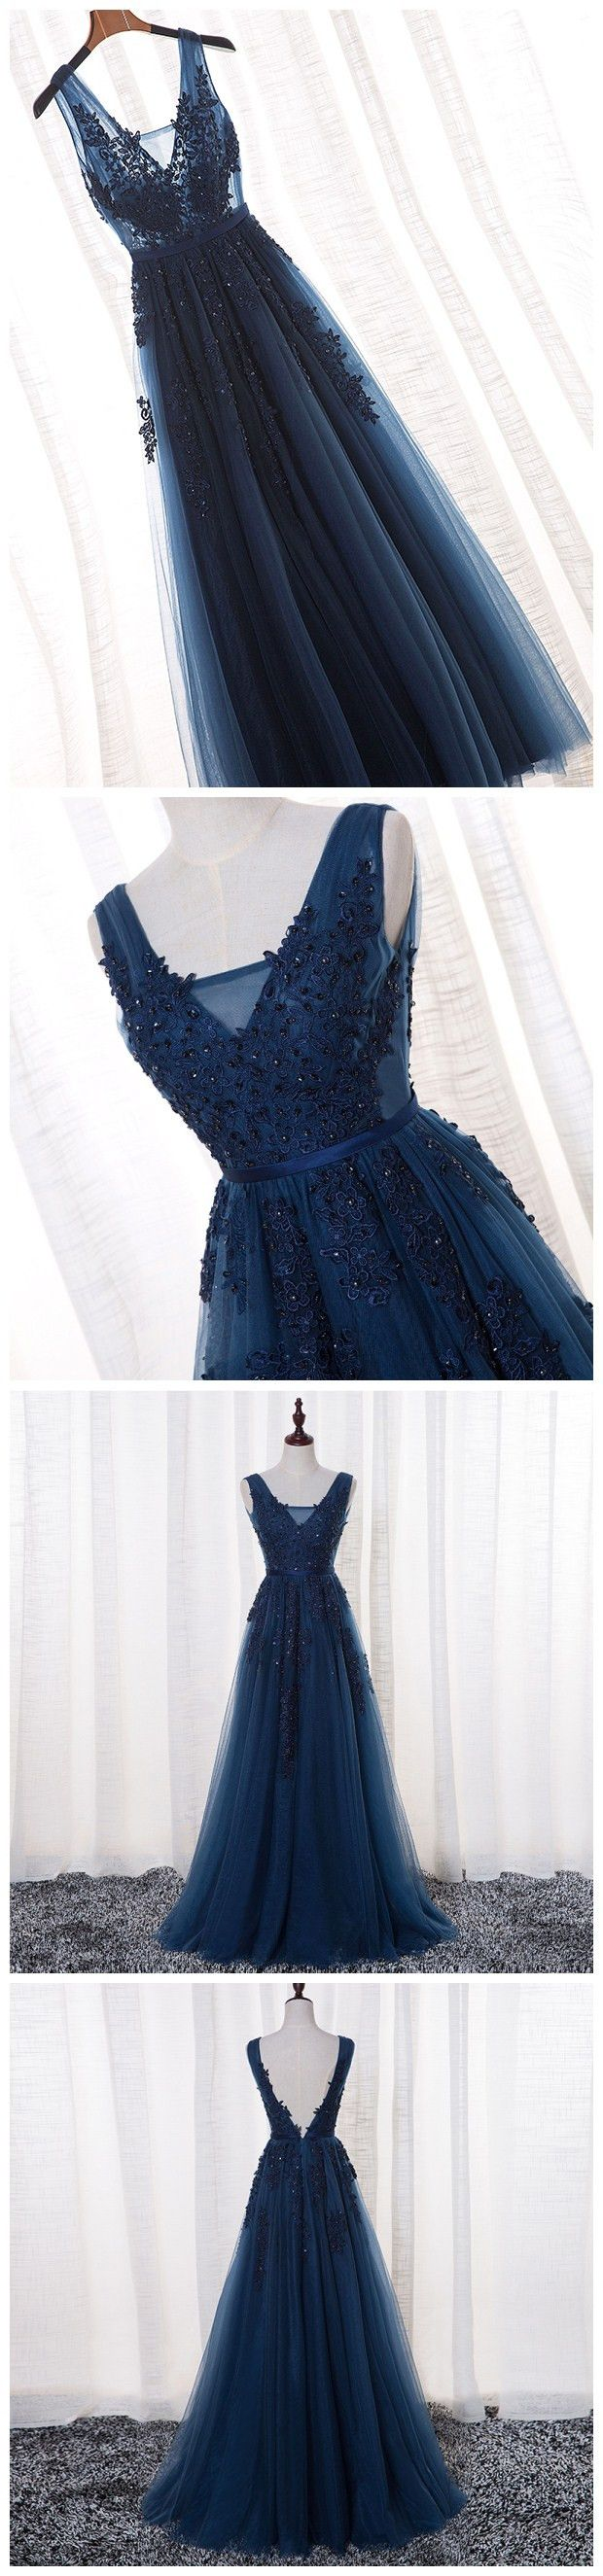 prom dresses 2018,gorgeous prom dresses,prom dresses unique,prom dresses elegant,prom dresses graduacion,prom dresses classy,prom dresses modest,prom dresses simple,prom dresses long,prom dresses for teens,prom dresses boho,prom dresses cheap,junior prom dresses,prom dresses flowy,beautiful prom dresses,prom dresses two piece,prom dresses dark navy,prom dresses appliqués #amyprom #prom #promdress #evening #eveningdress #dance #longdress #longpromdress #fashion #style #dress